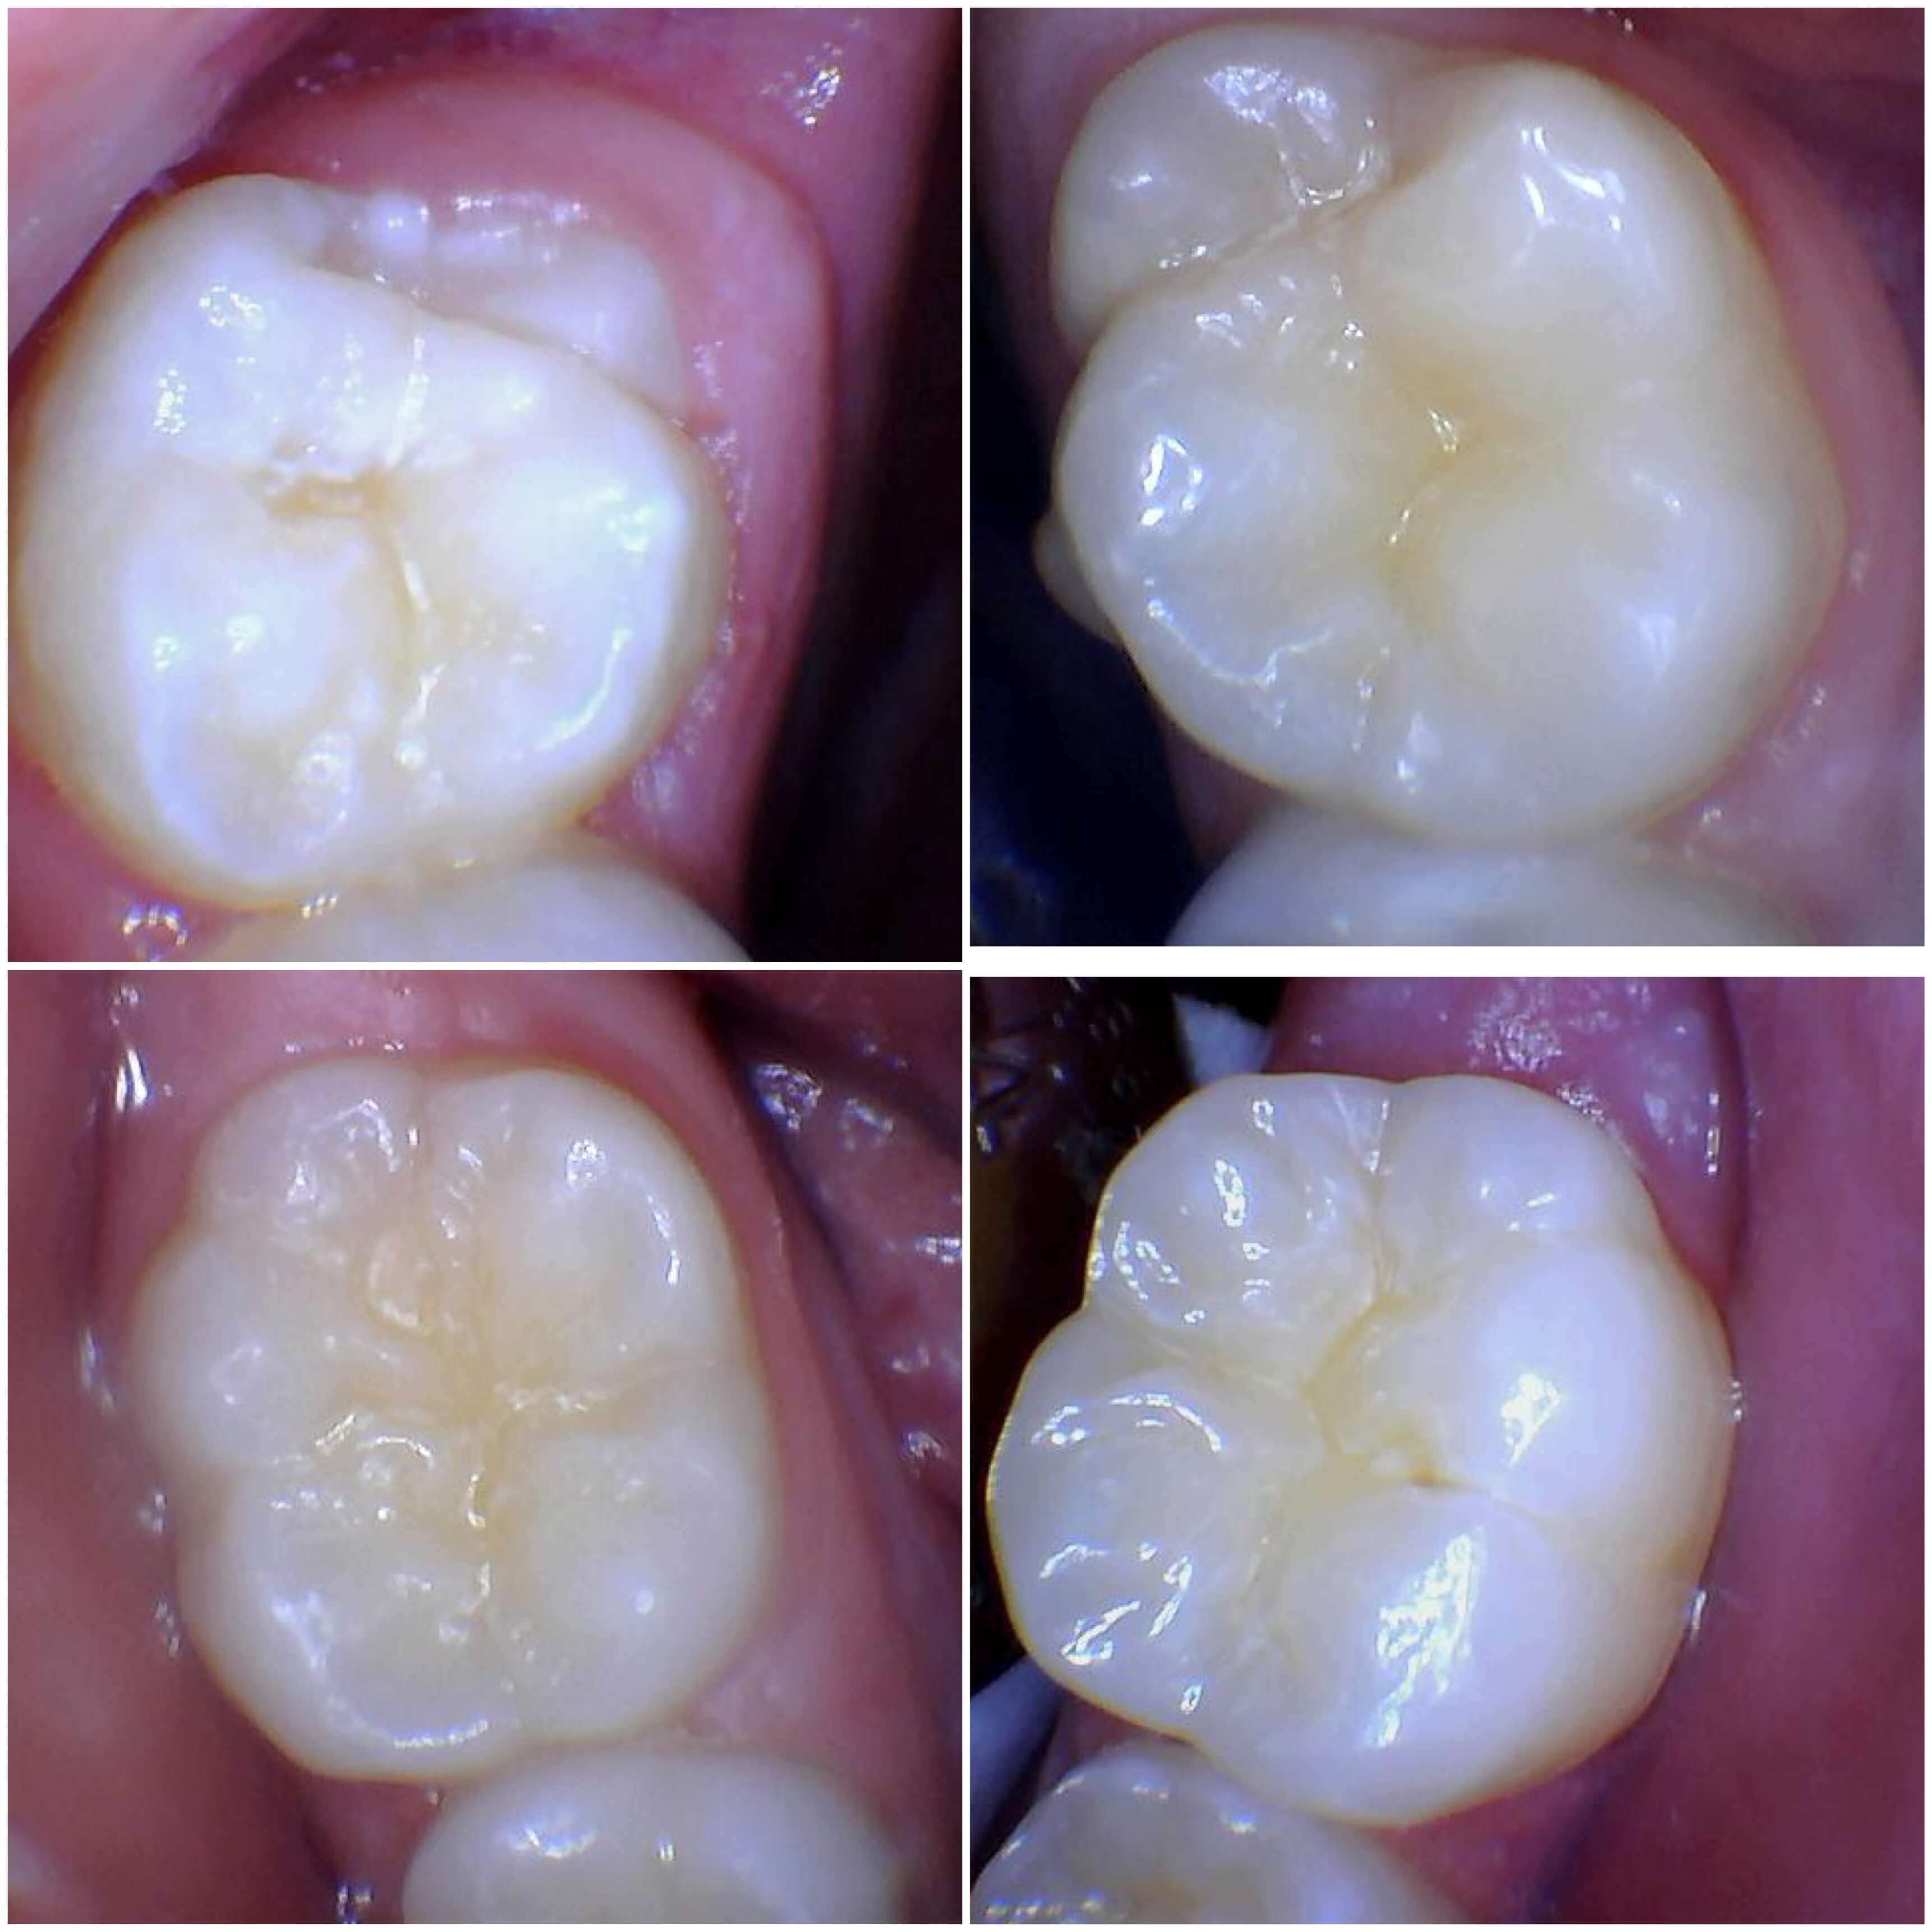 Sealants for 6 and 12yr molars Before